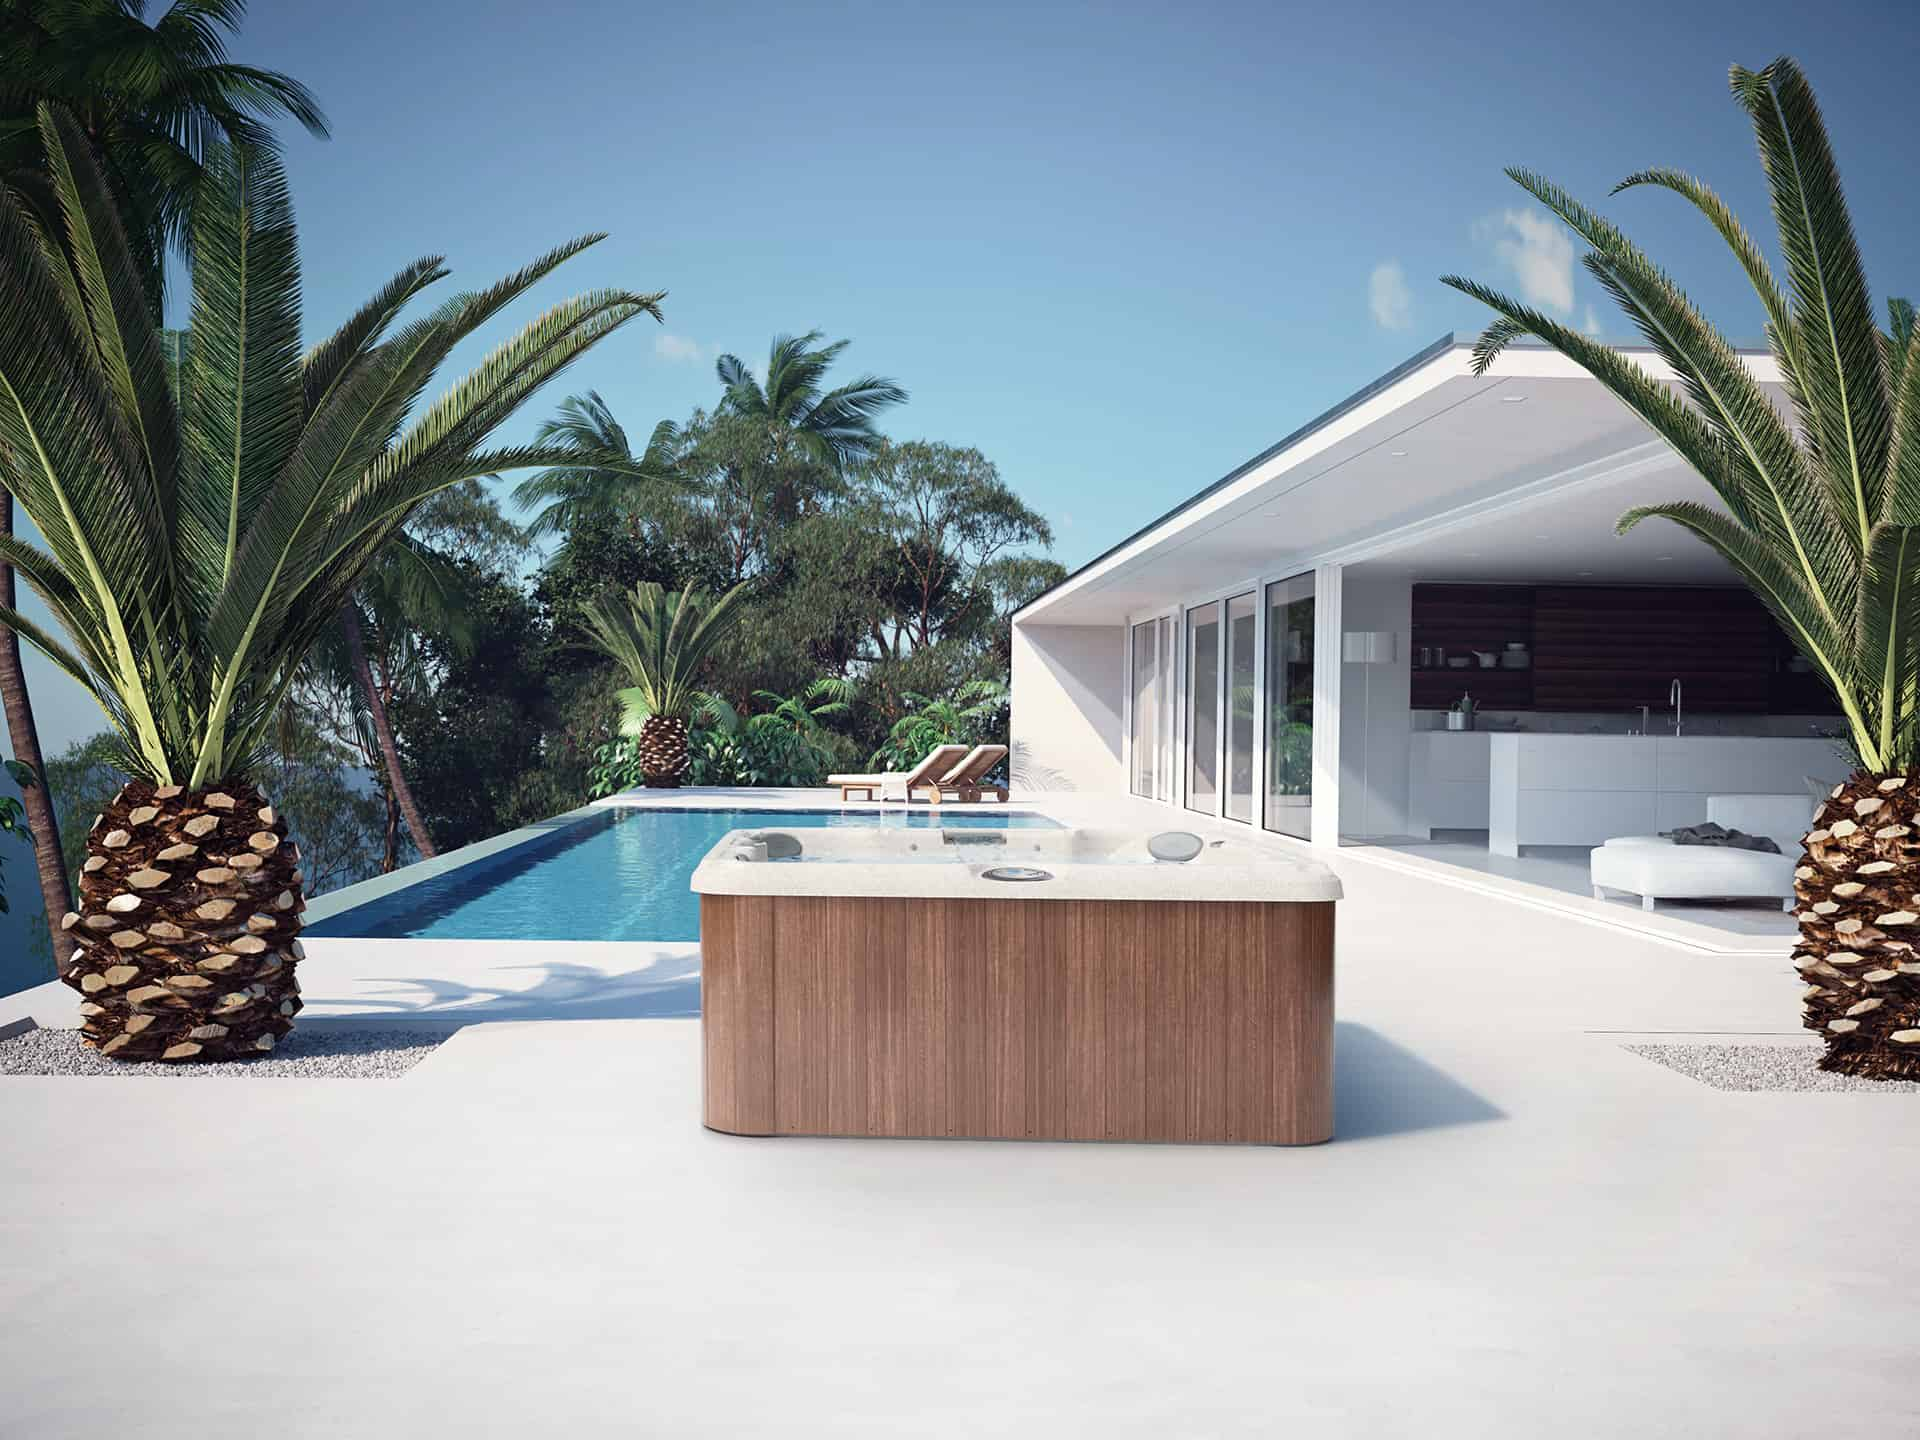 J-235 hot tub with 5 seats and 1 lounge seat backyard installation